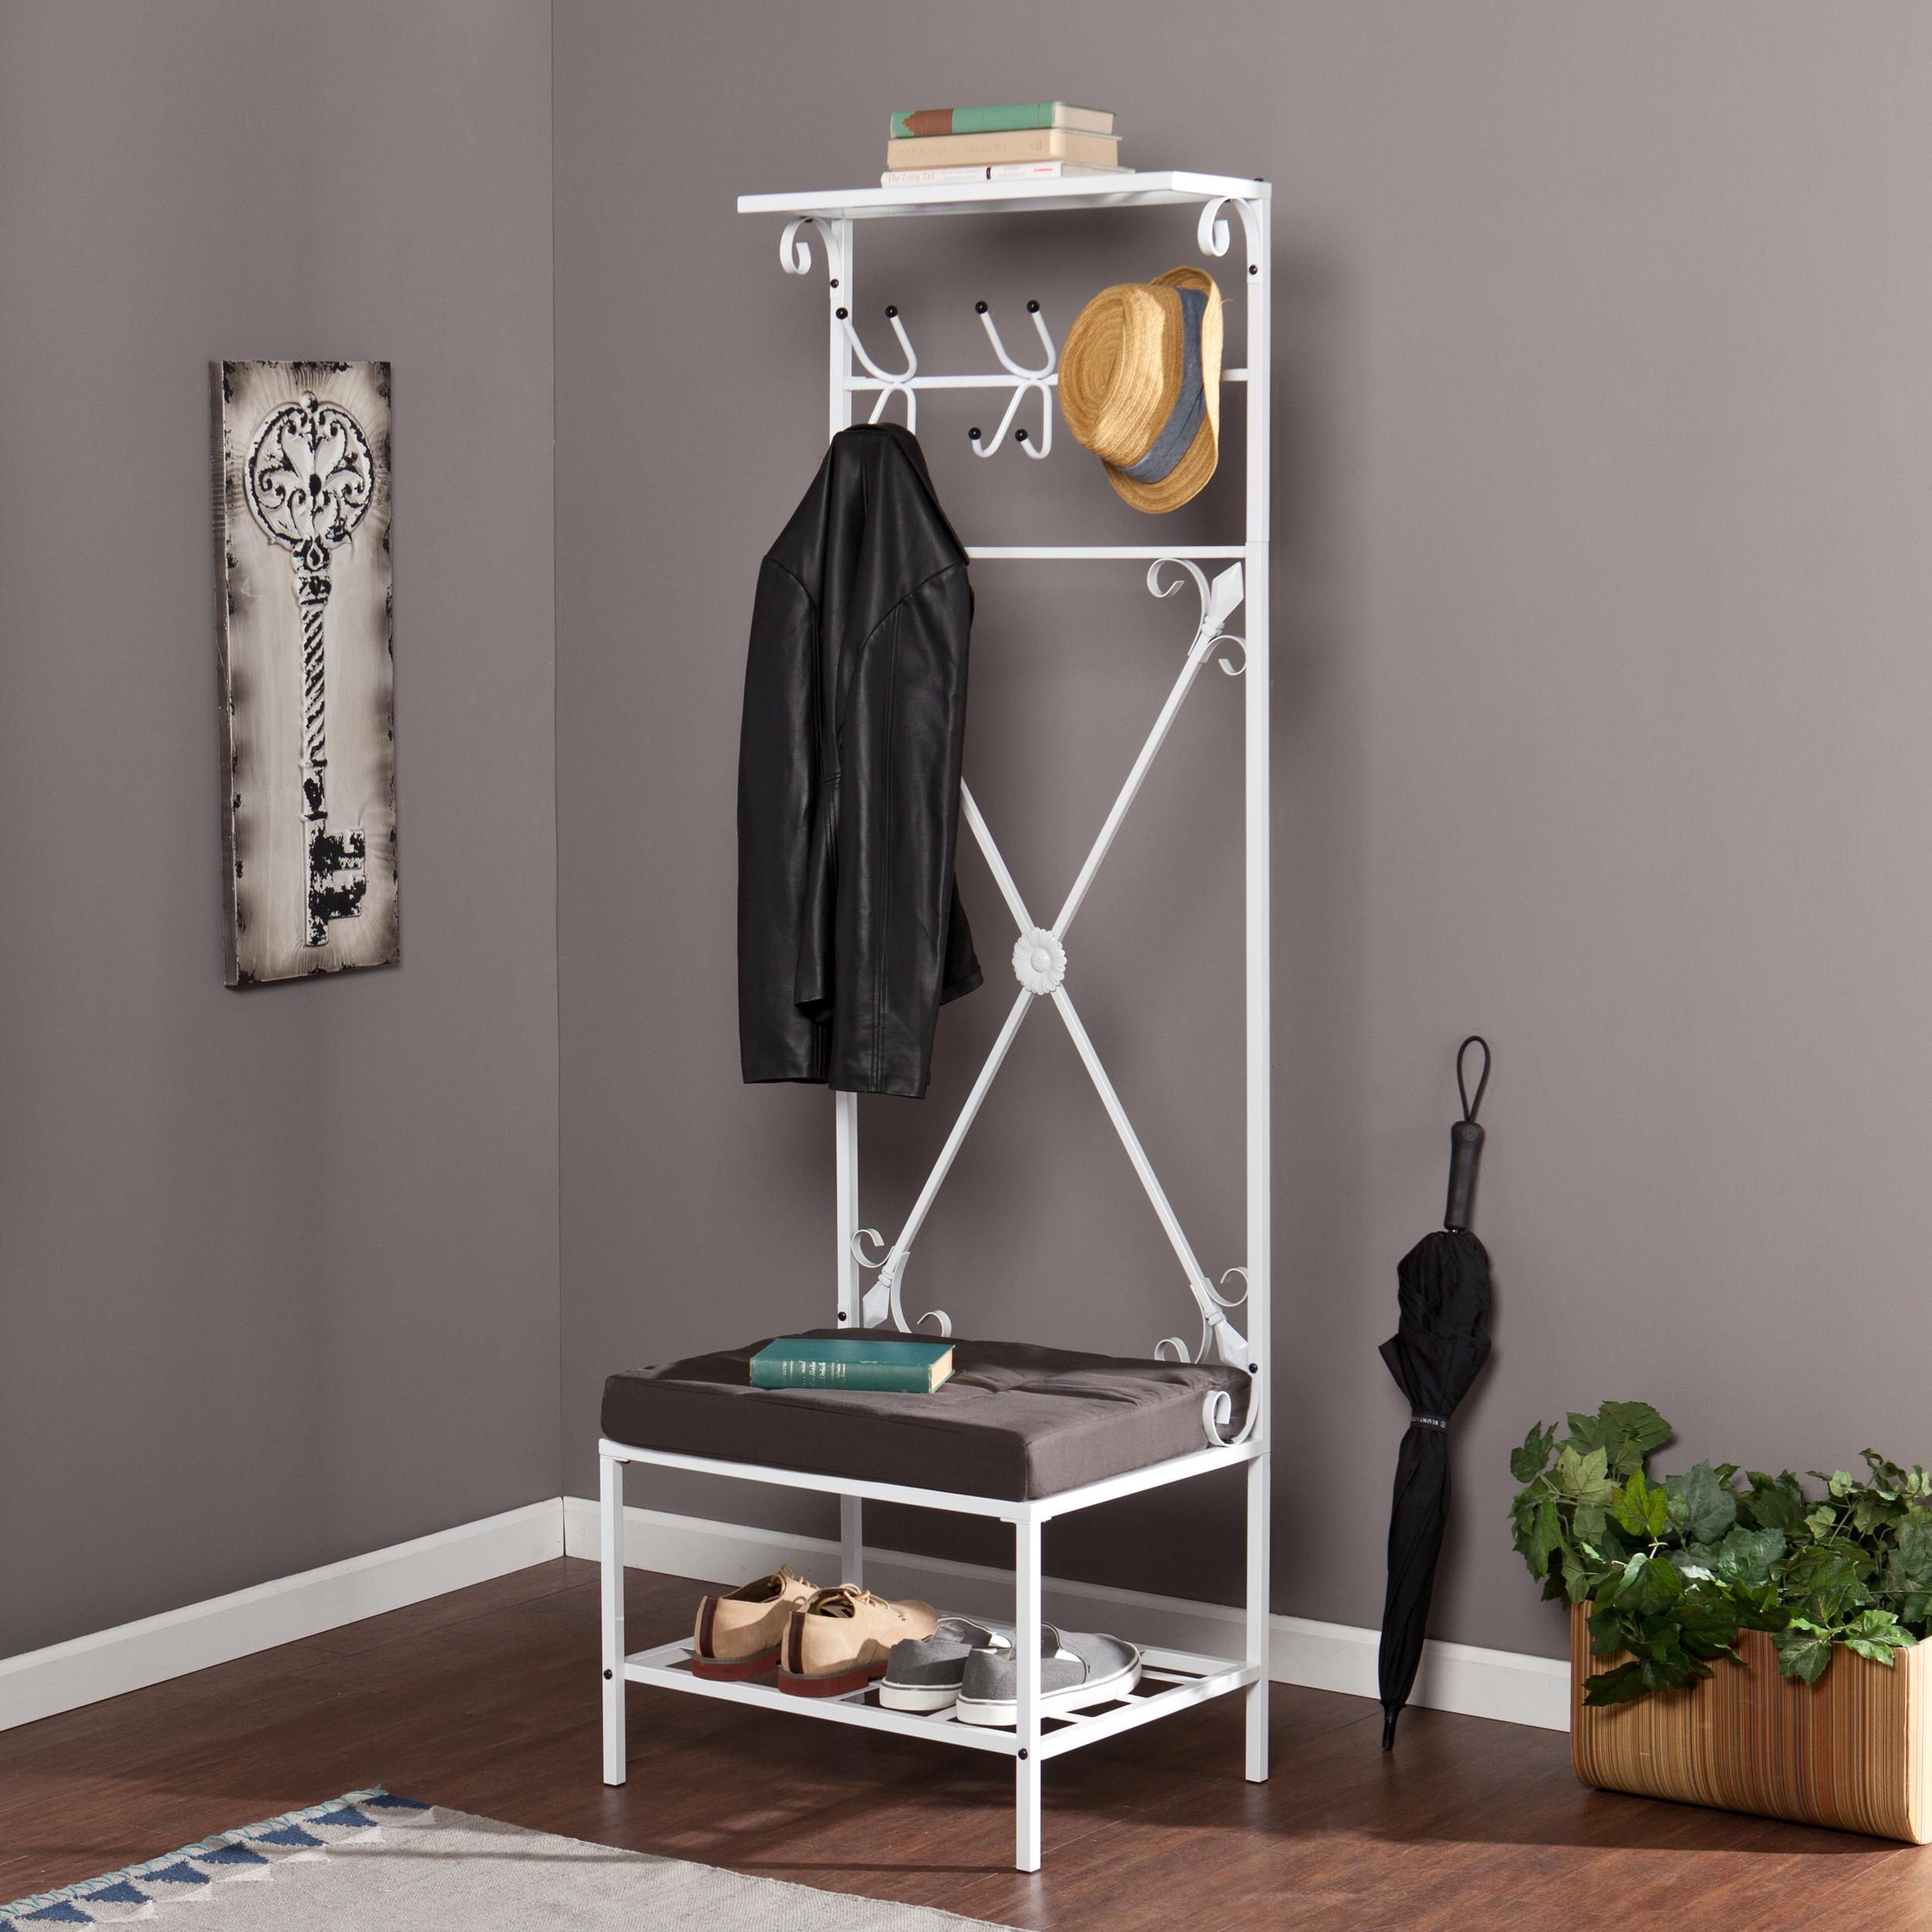 Coatrack Bench | Entryway Storage Bench with Coat Rack | Storage Bench with Coat Hooks